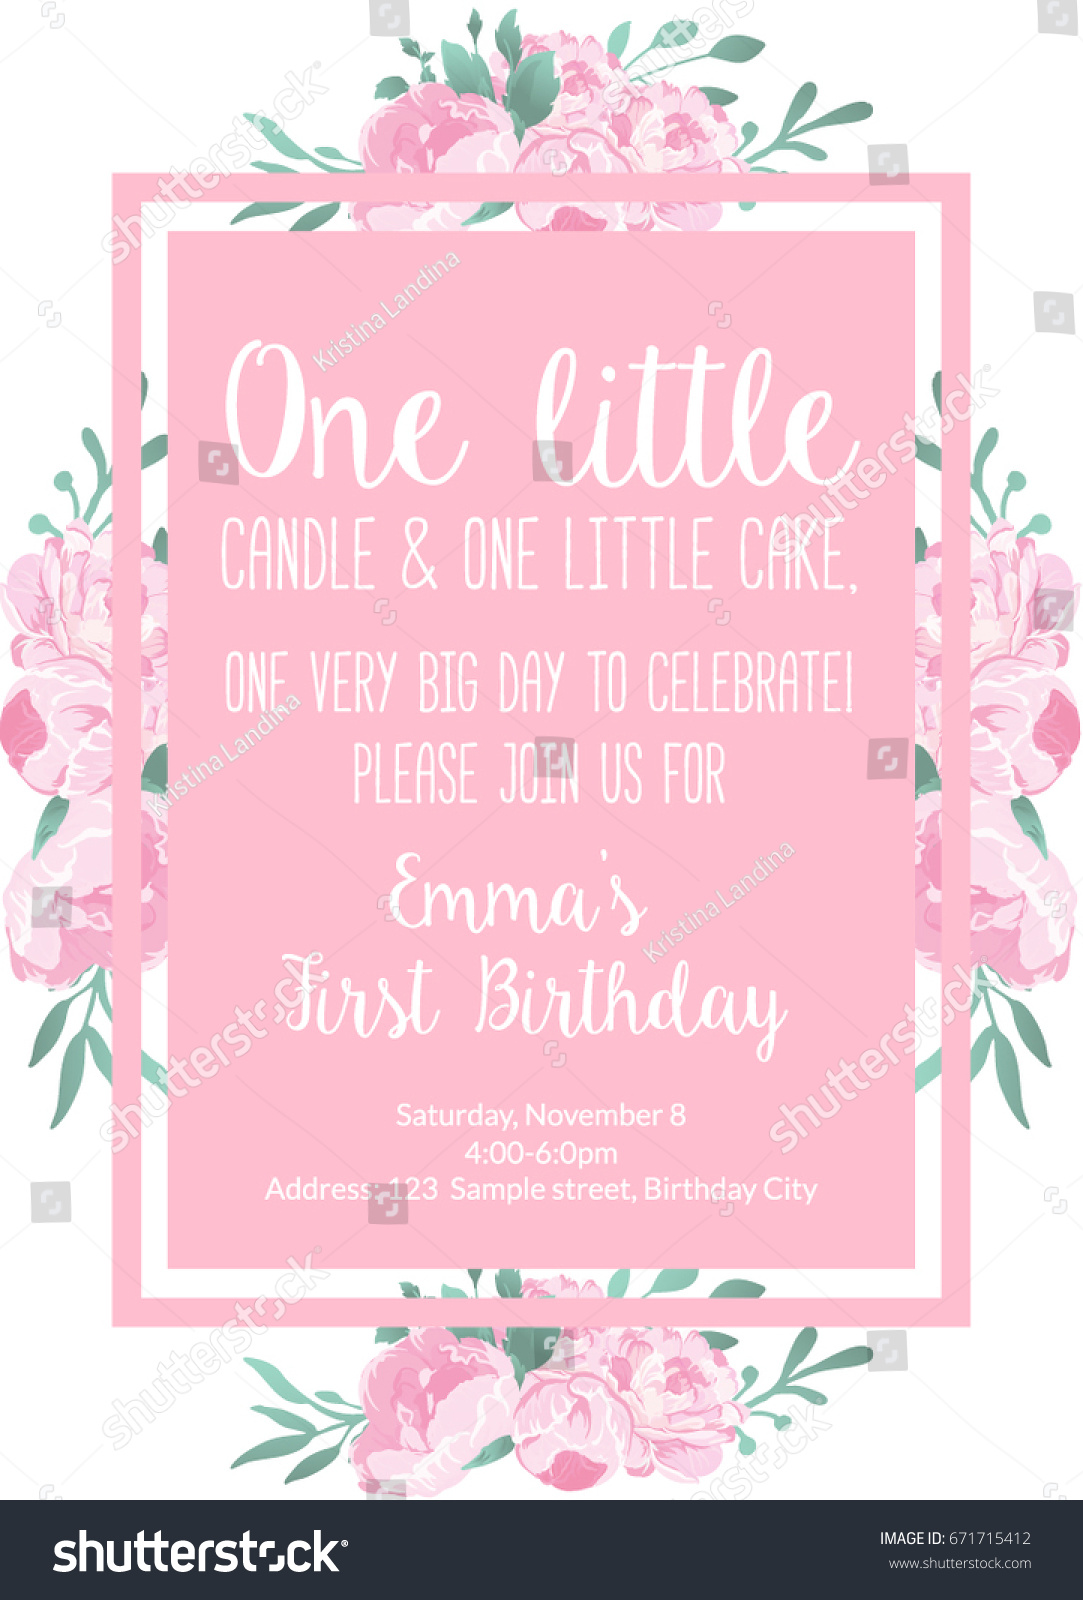 First Birthday Invitation Light Pink For Girl Party With Text One Little Candle And Cake Year